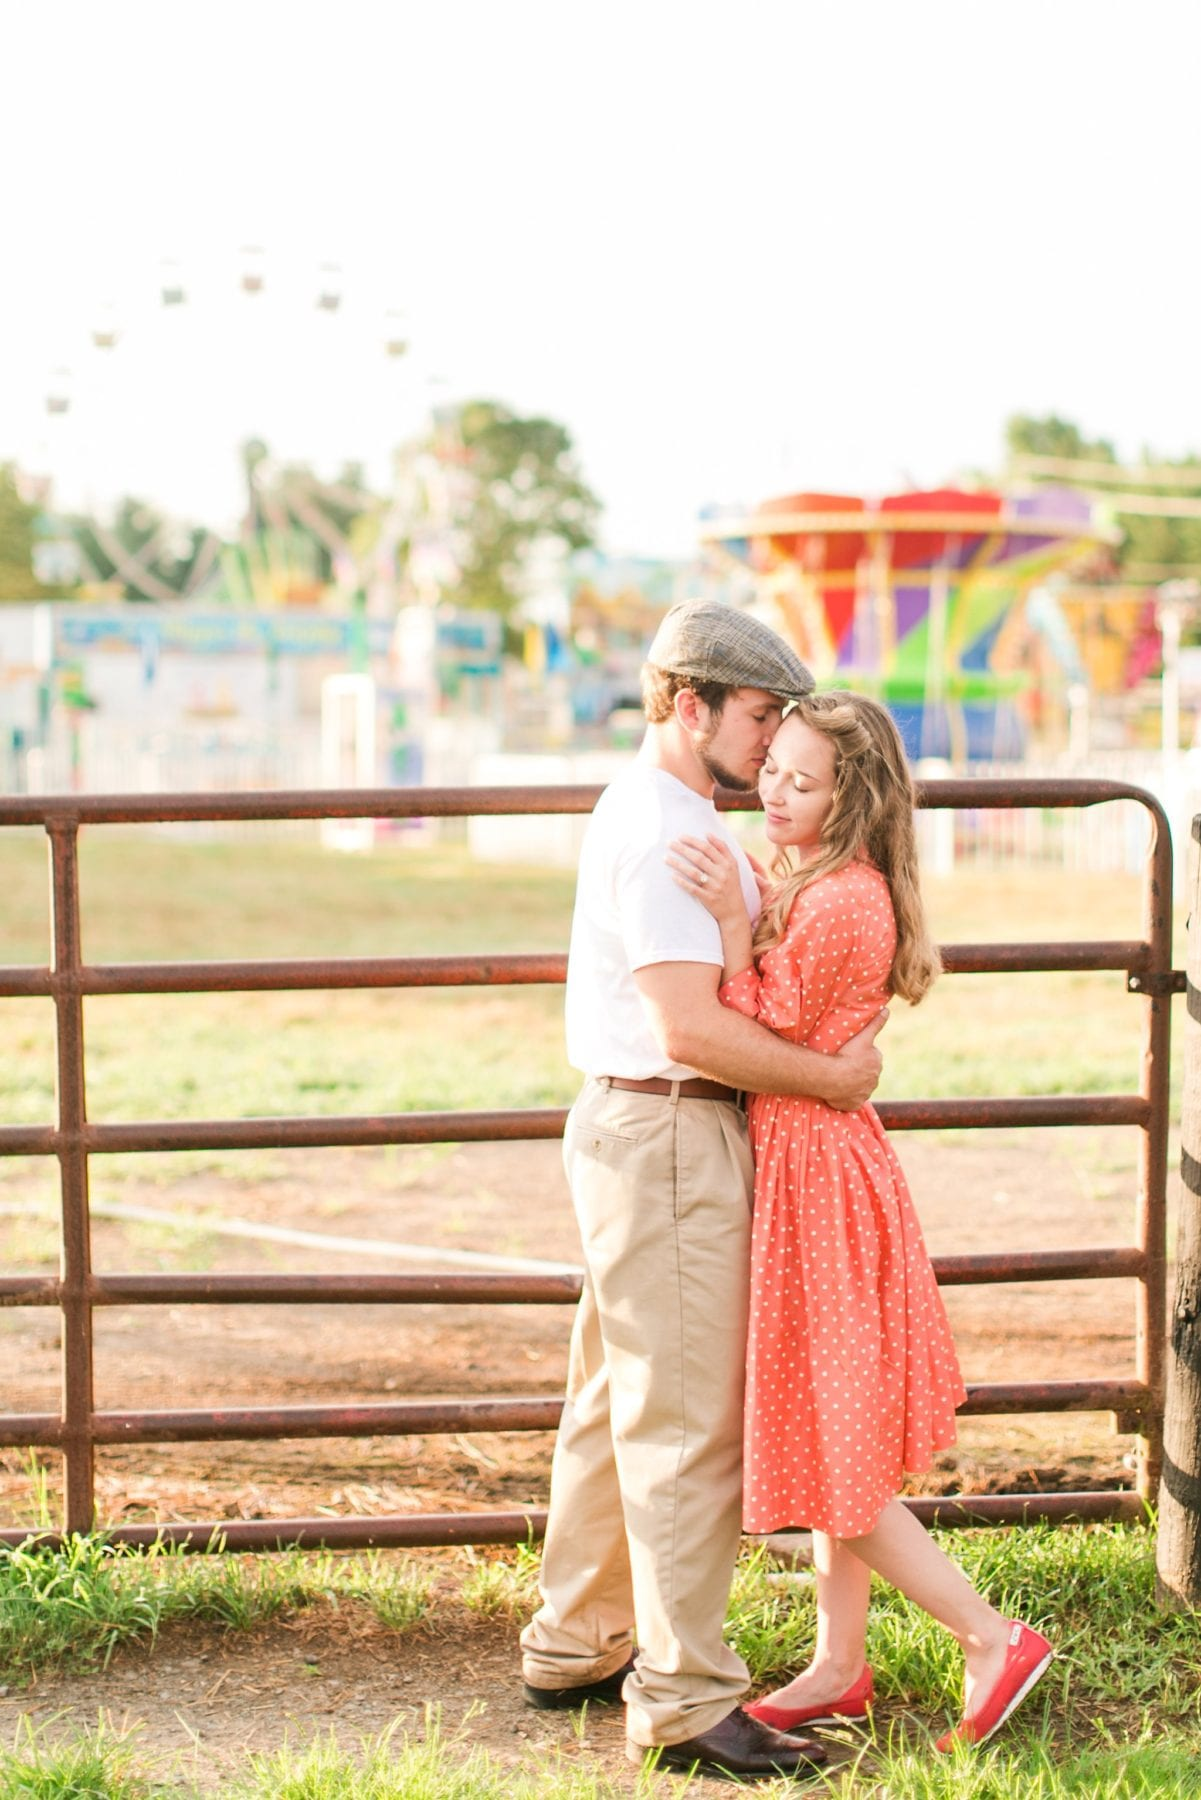 County Fair Engagement Photos Virginia Wedding Photographer Megan Kelsey Photography Samantha & Charles-129.JPG